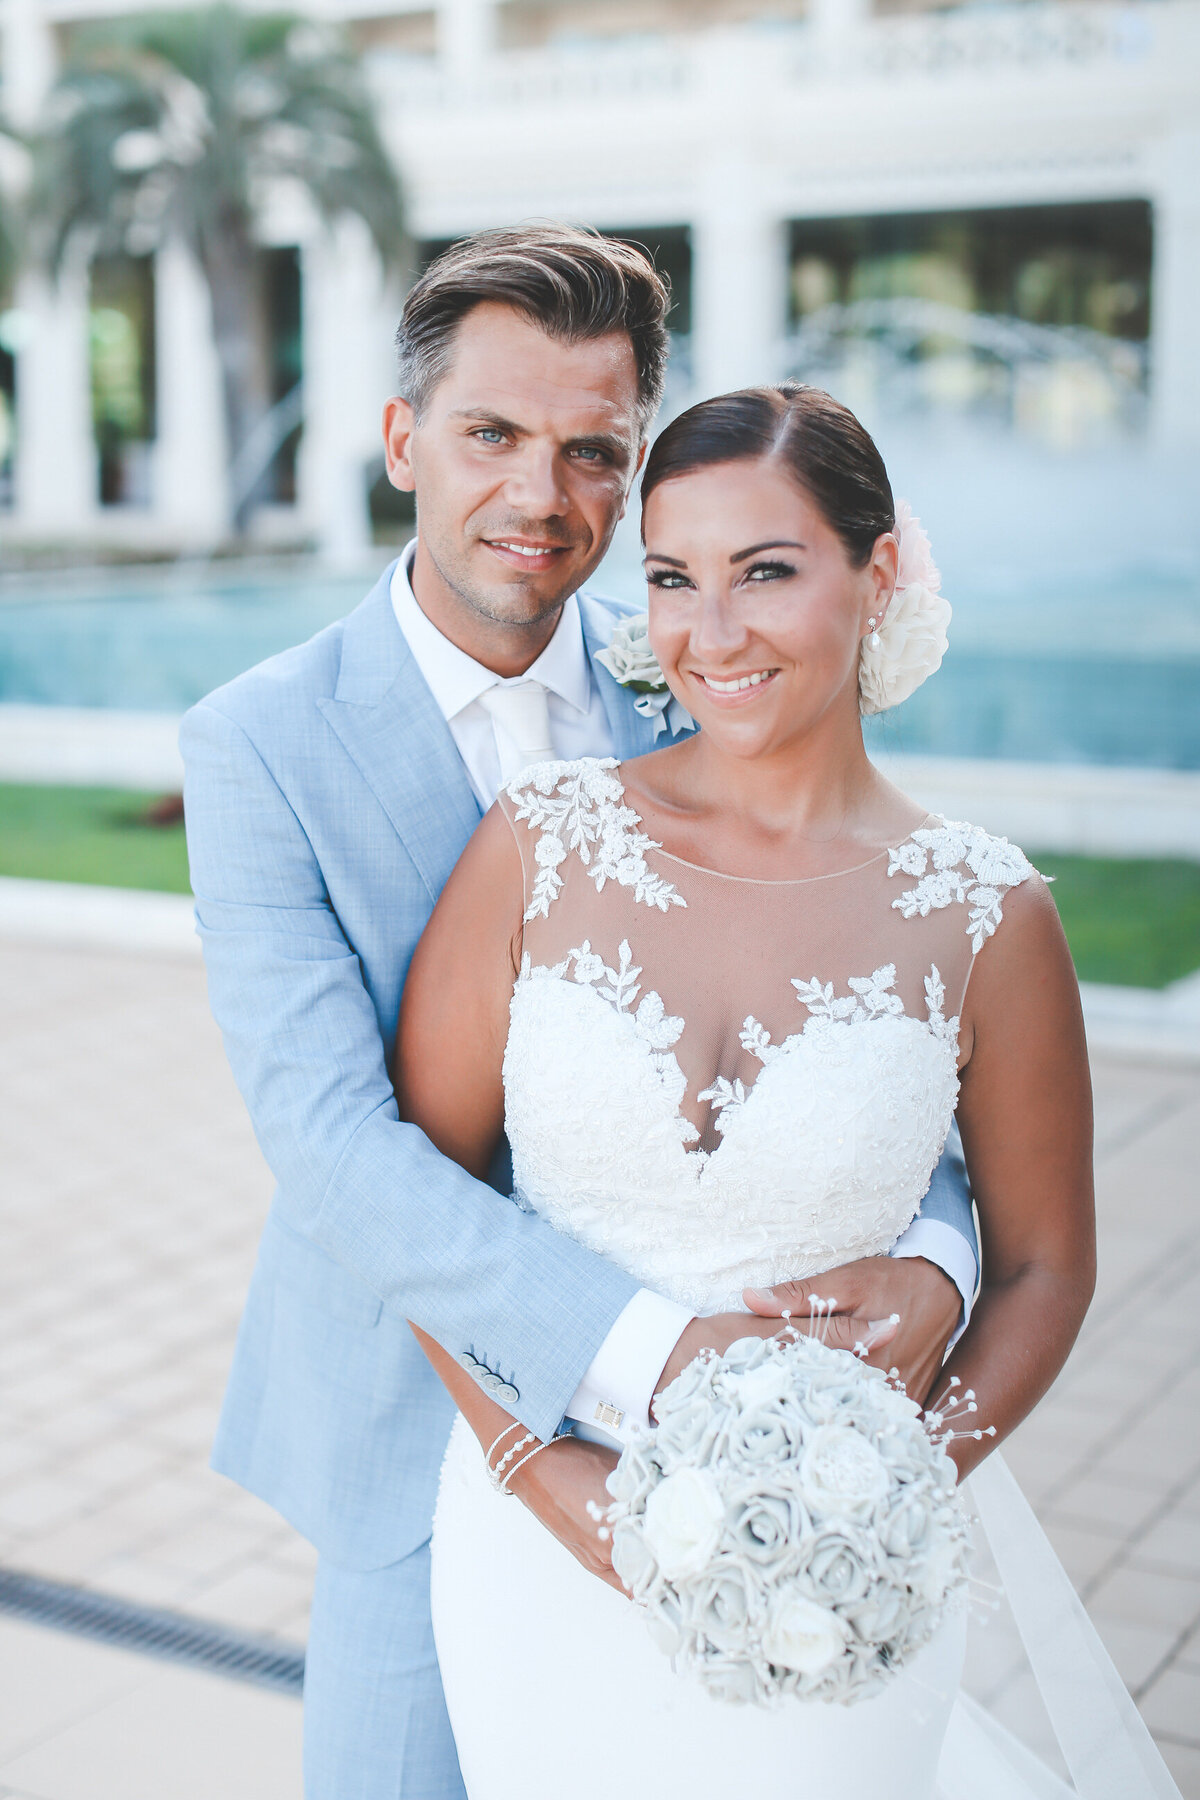 DESTINATION-WEDDING-SPAIN-HANNAH-MACGREGOR-PHOTOGRAPHY-0037